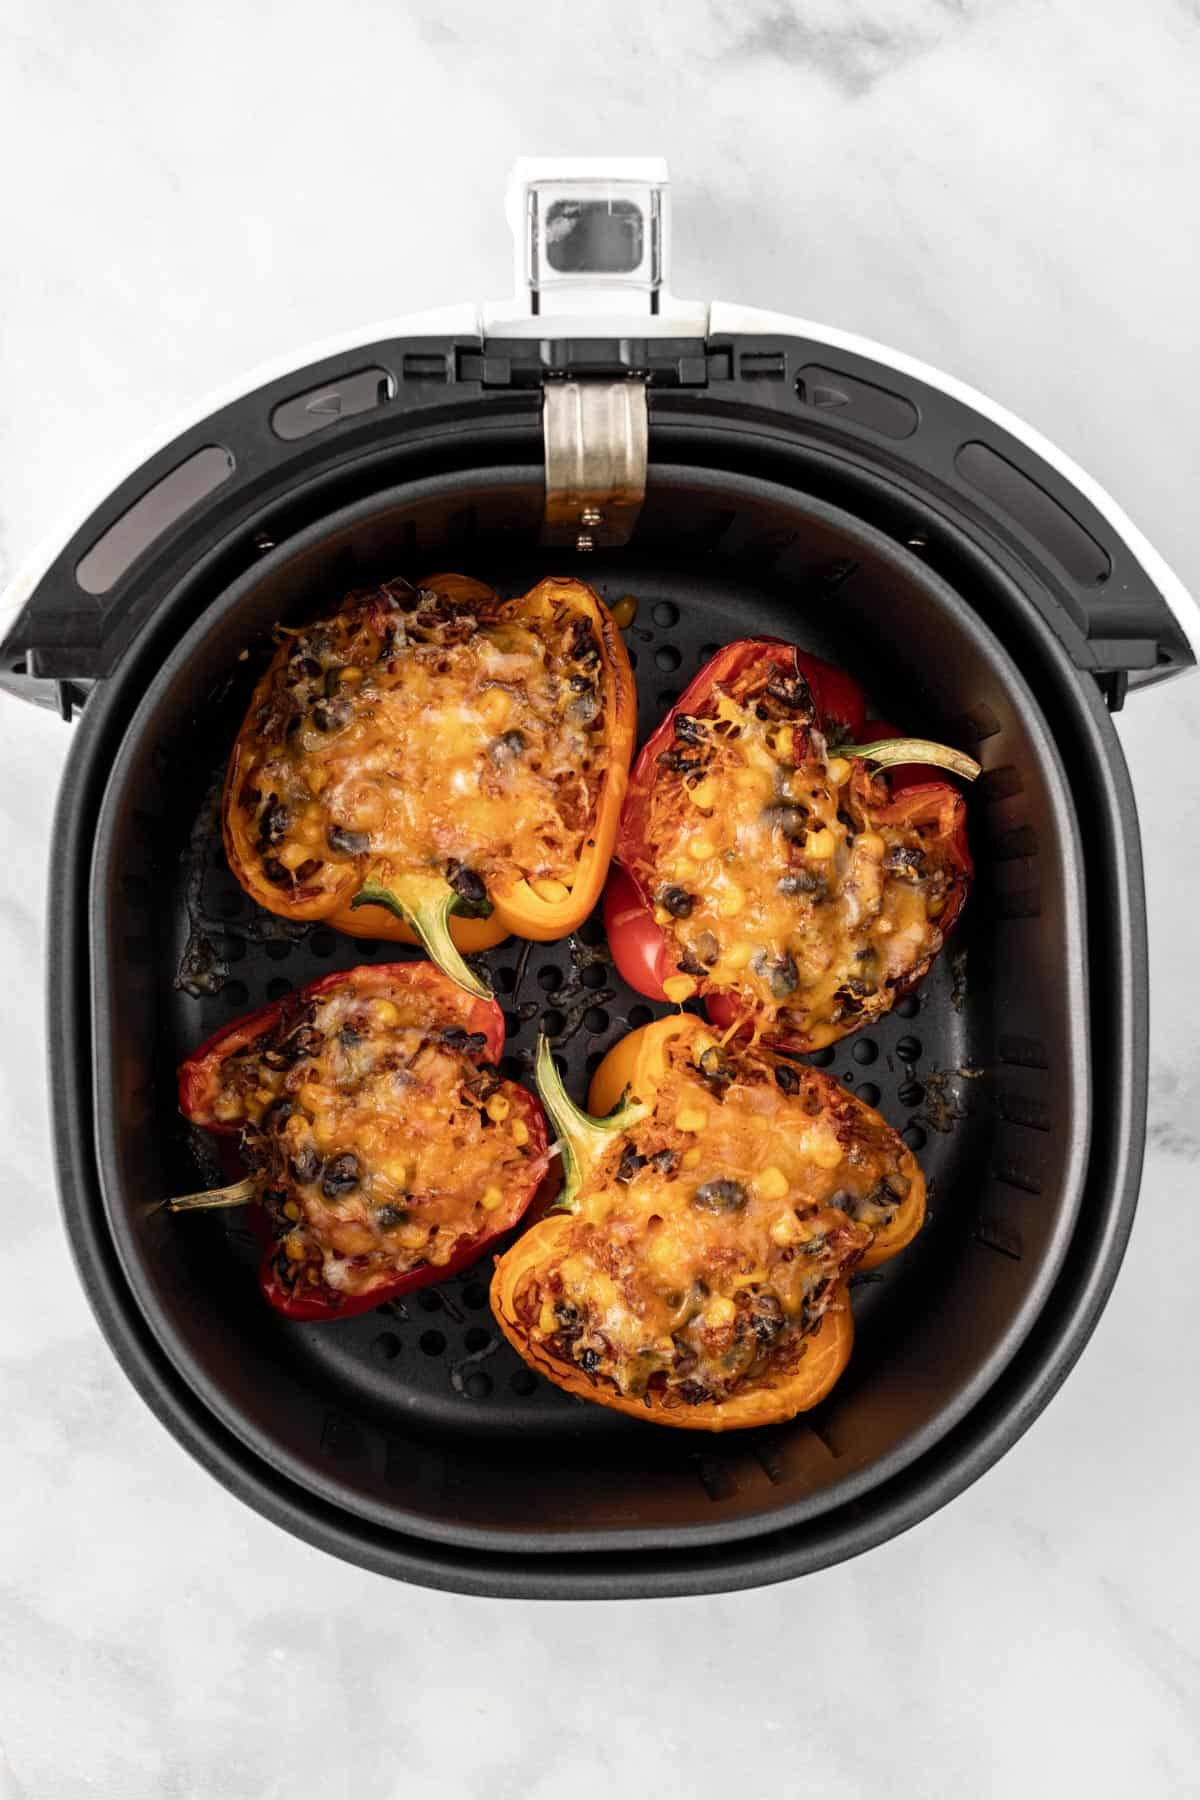 Cooked stuffed peppers with melted cheese on top in an air fryer basket.